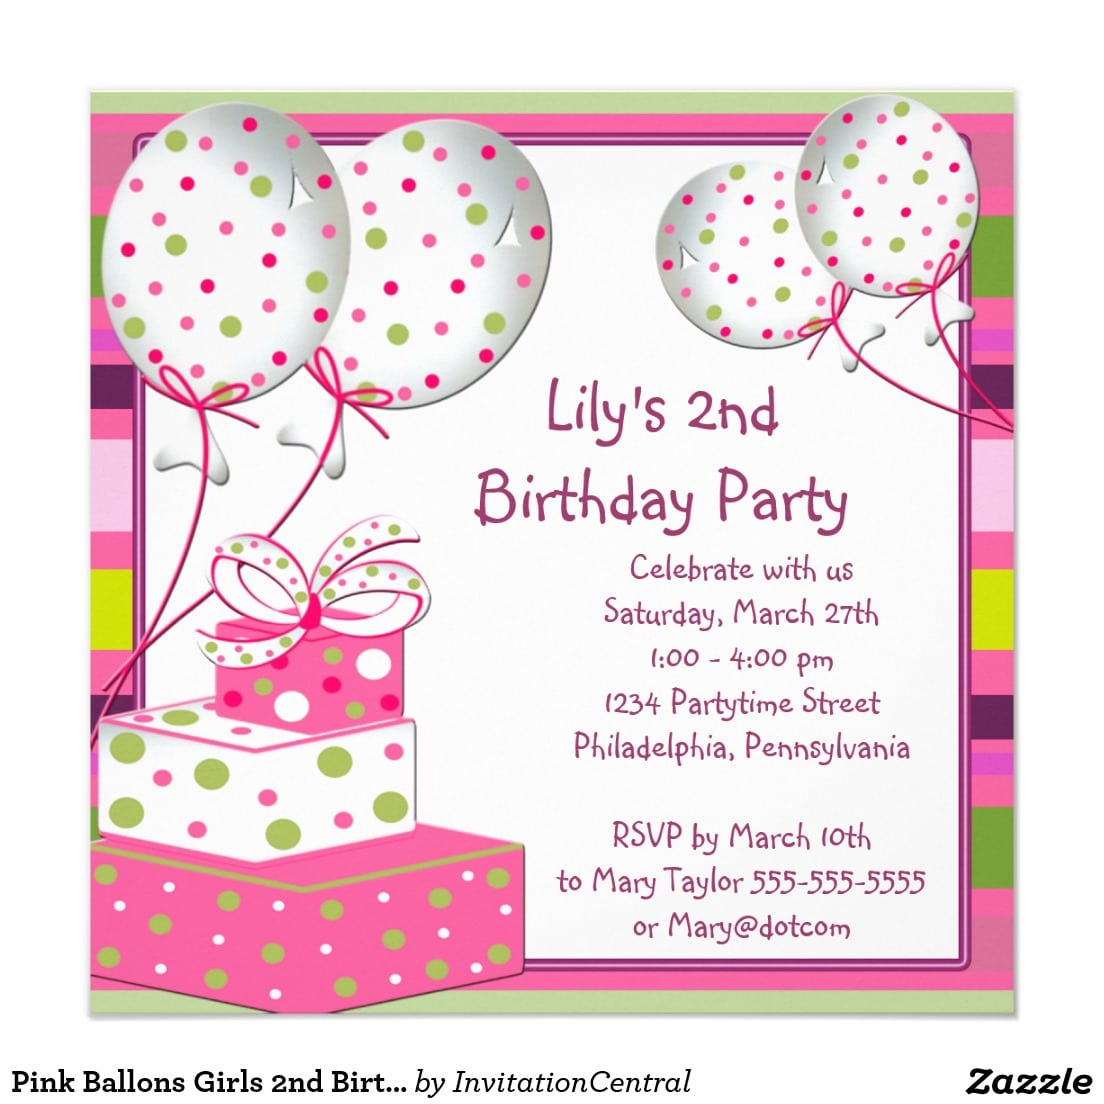 invitation cards for birthday party template - Ideal.vistalist.co